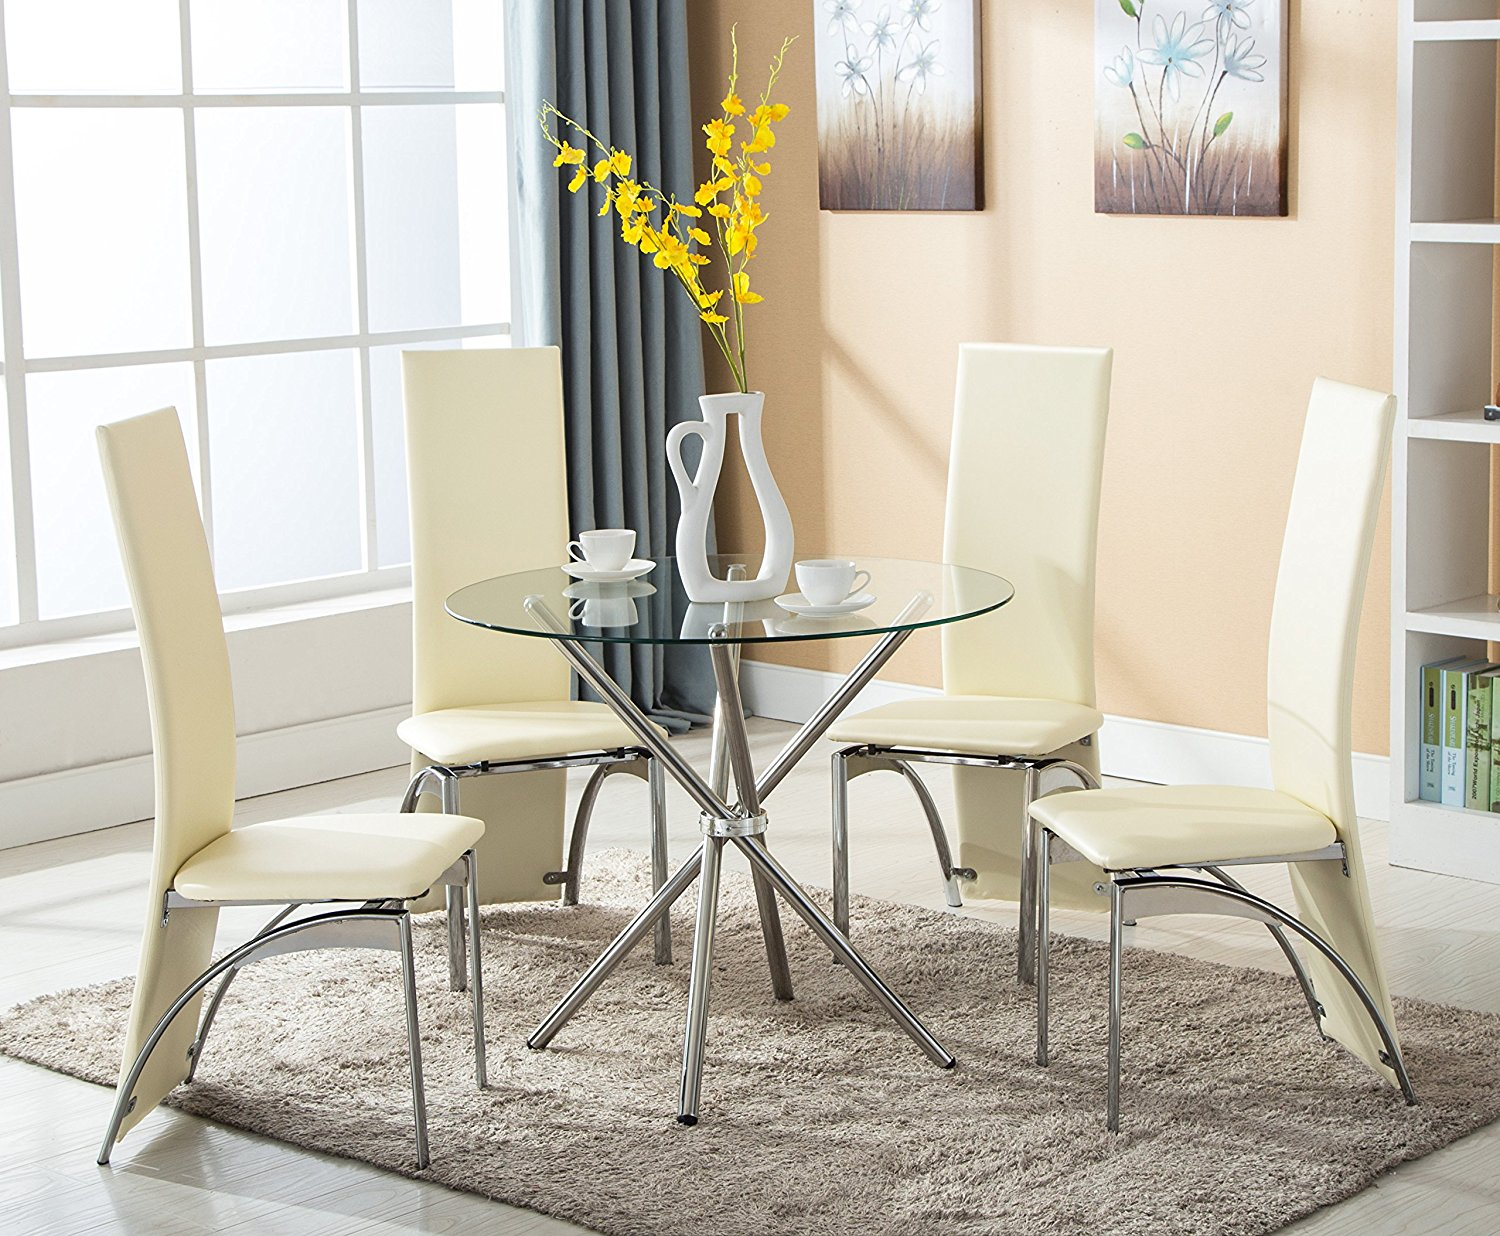 This Dining Chair Is Designed With The Aim To Last For A Lifetime!  Entertain Your Guests During Those Beautiful Days Or Nights From The  Comforts Of Your ...